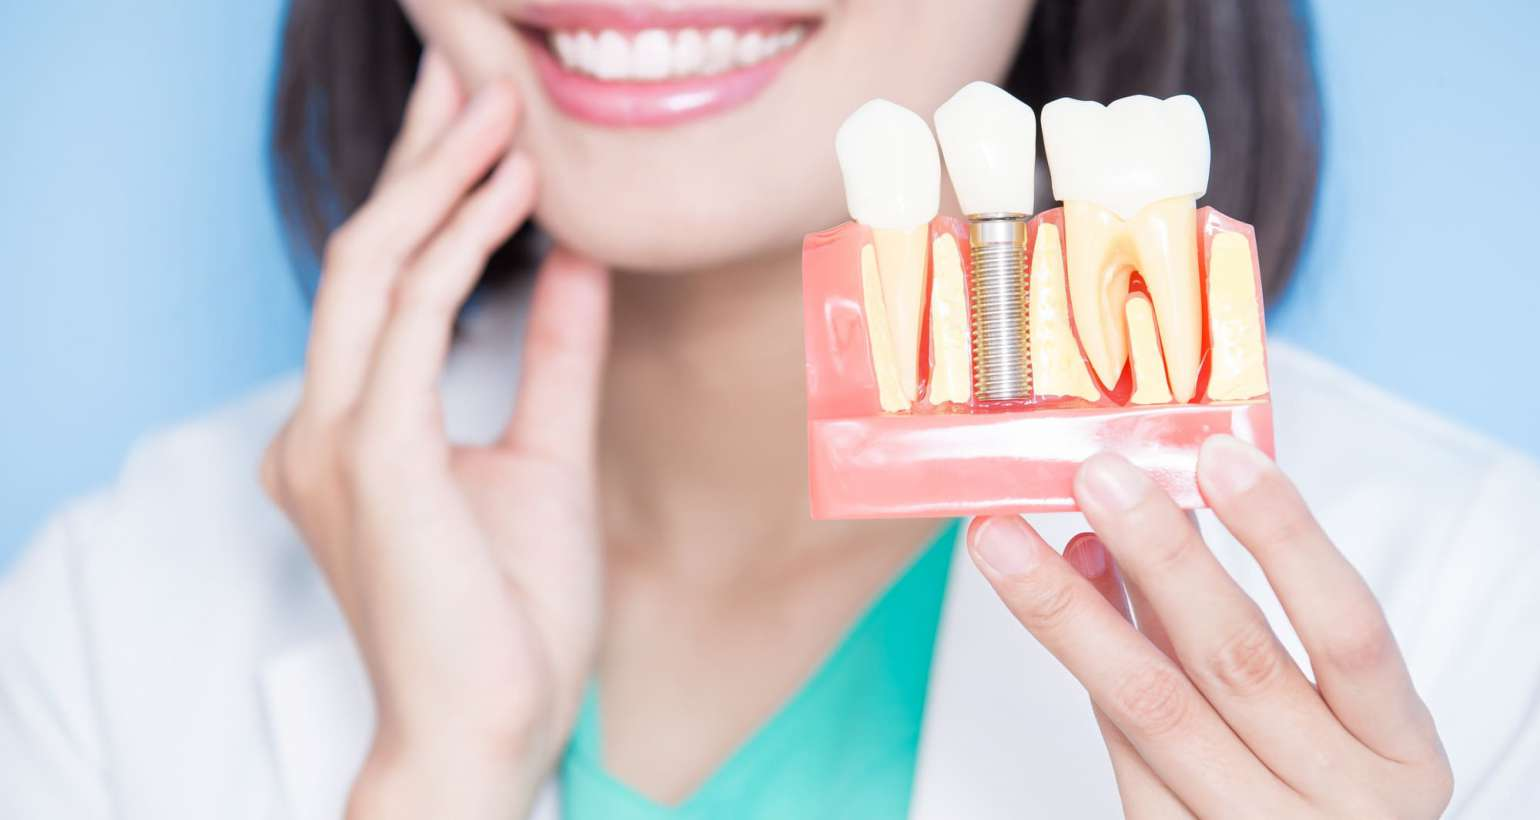 The main benefits of dental implants